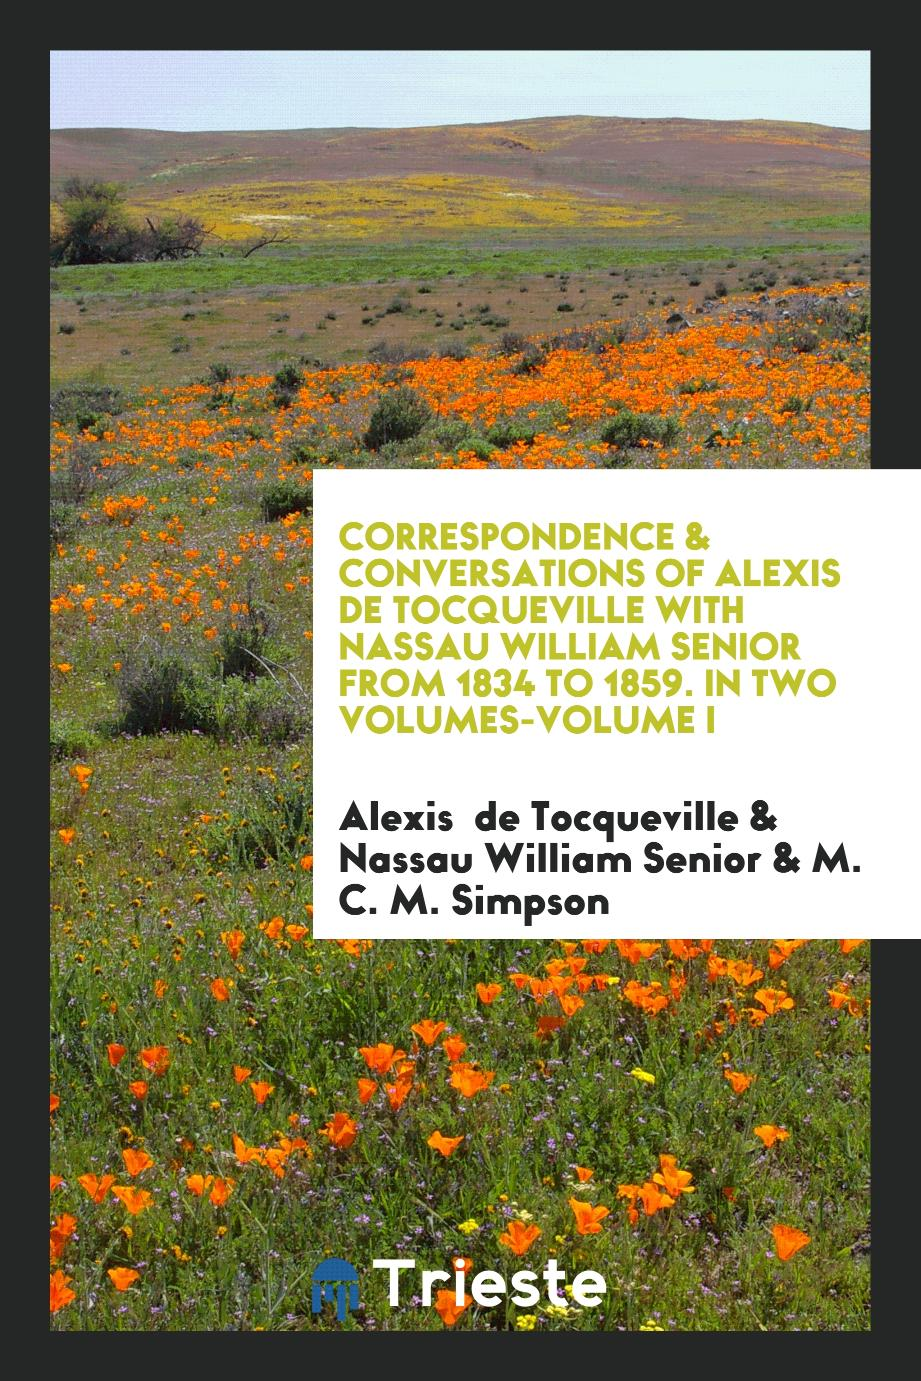 Correspondence & Conversations of Alexis de Tocqueville with Nassau William Senior from 1834 to 1859. In Two Volumes-Volume I